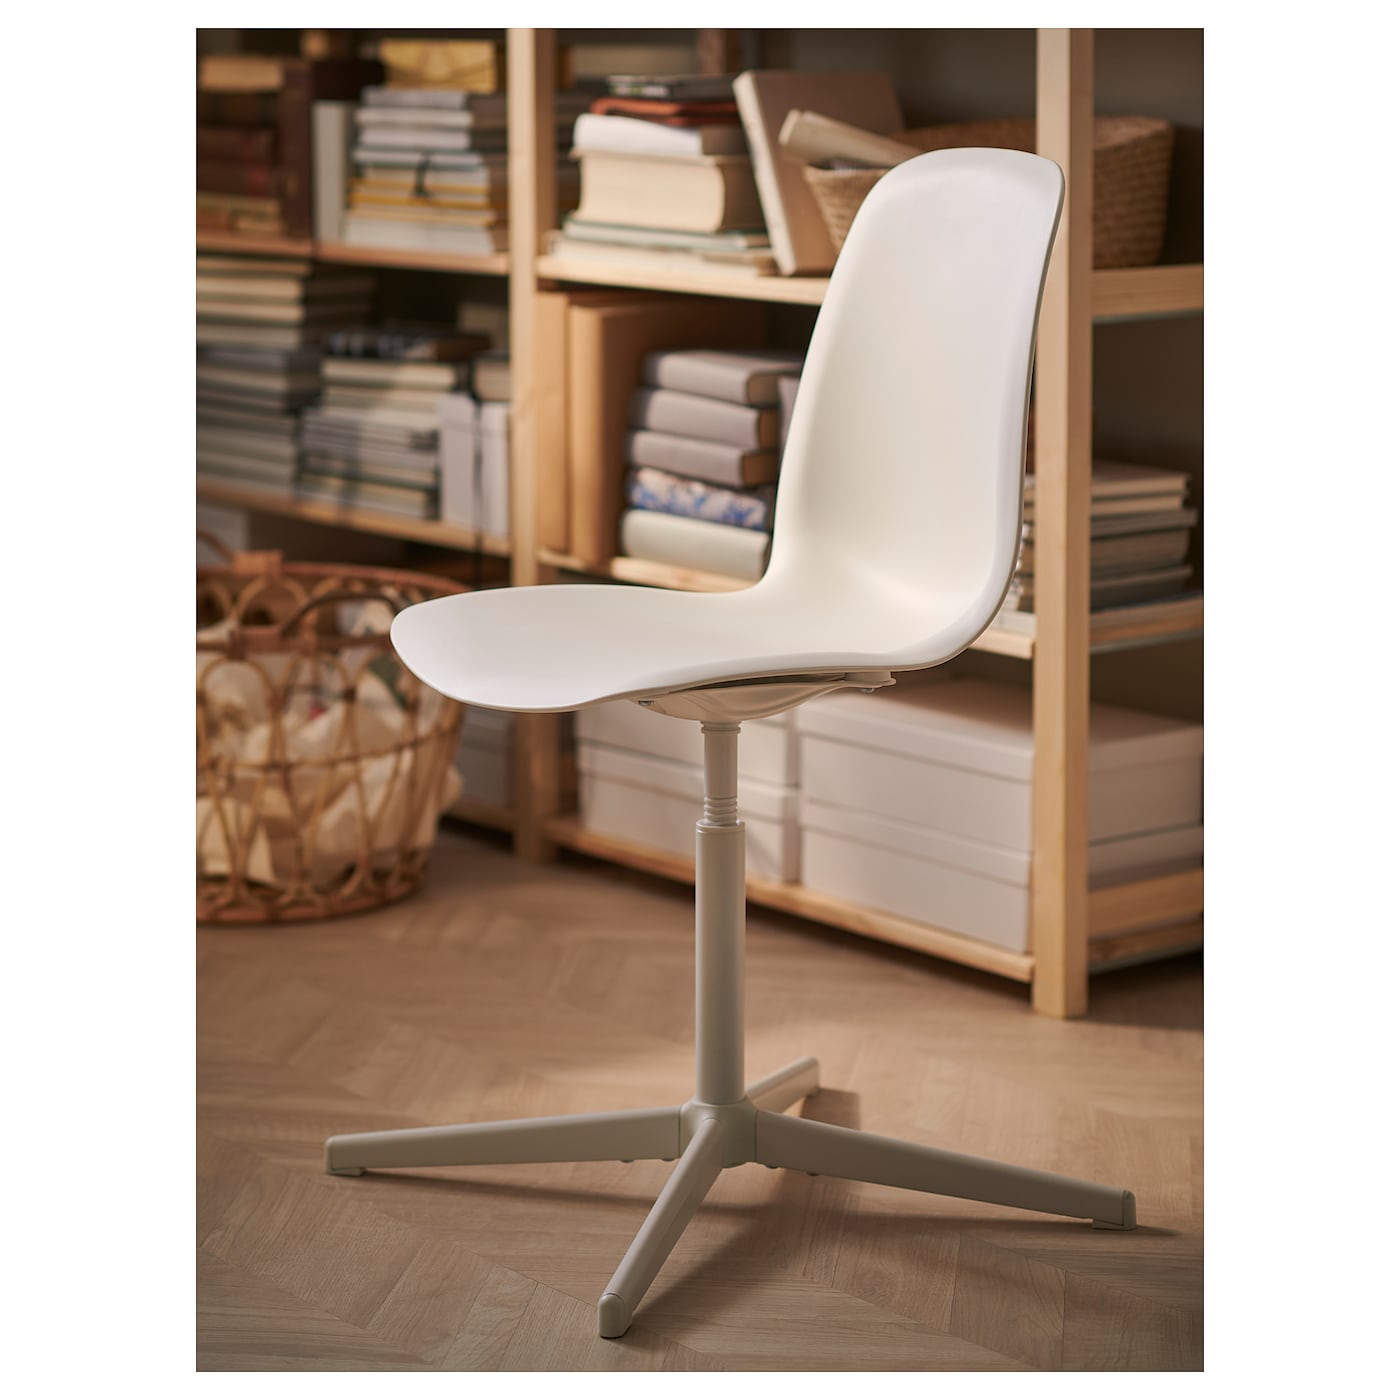 Balsberget white, Swivel chair IKEA